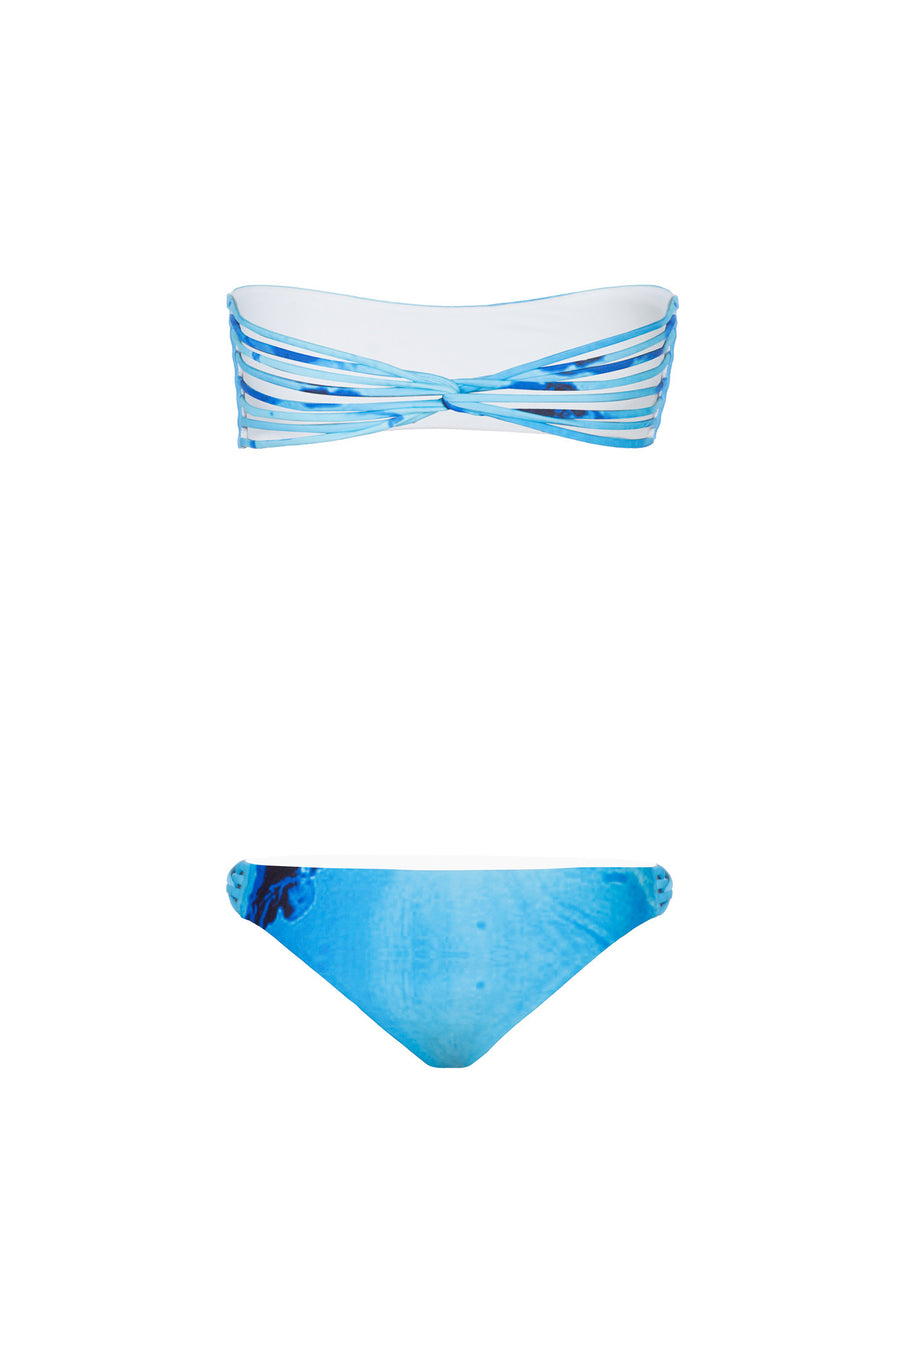 """Giselle"" Bandeau Reversible Bikini [Ocean Rush / Indian Summer White]"